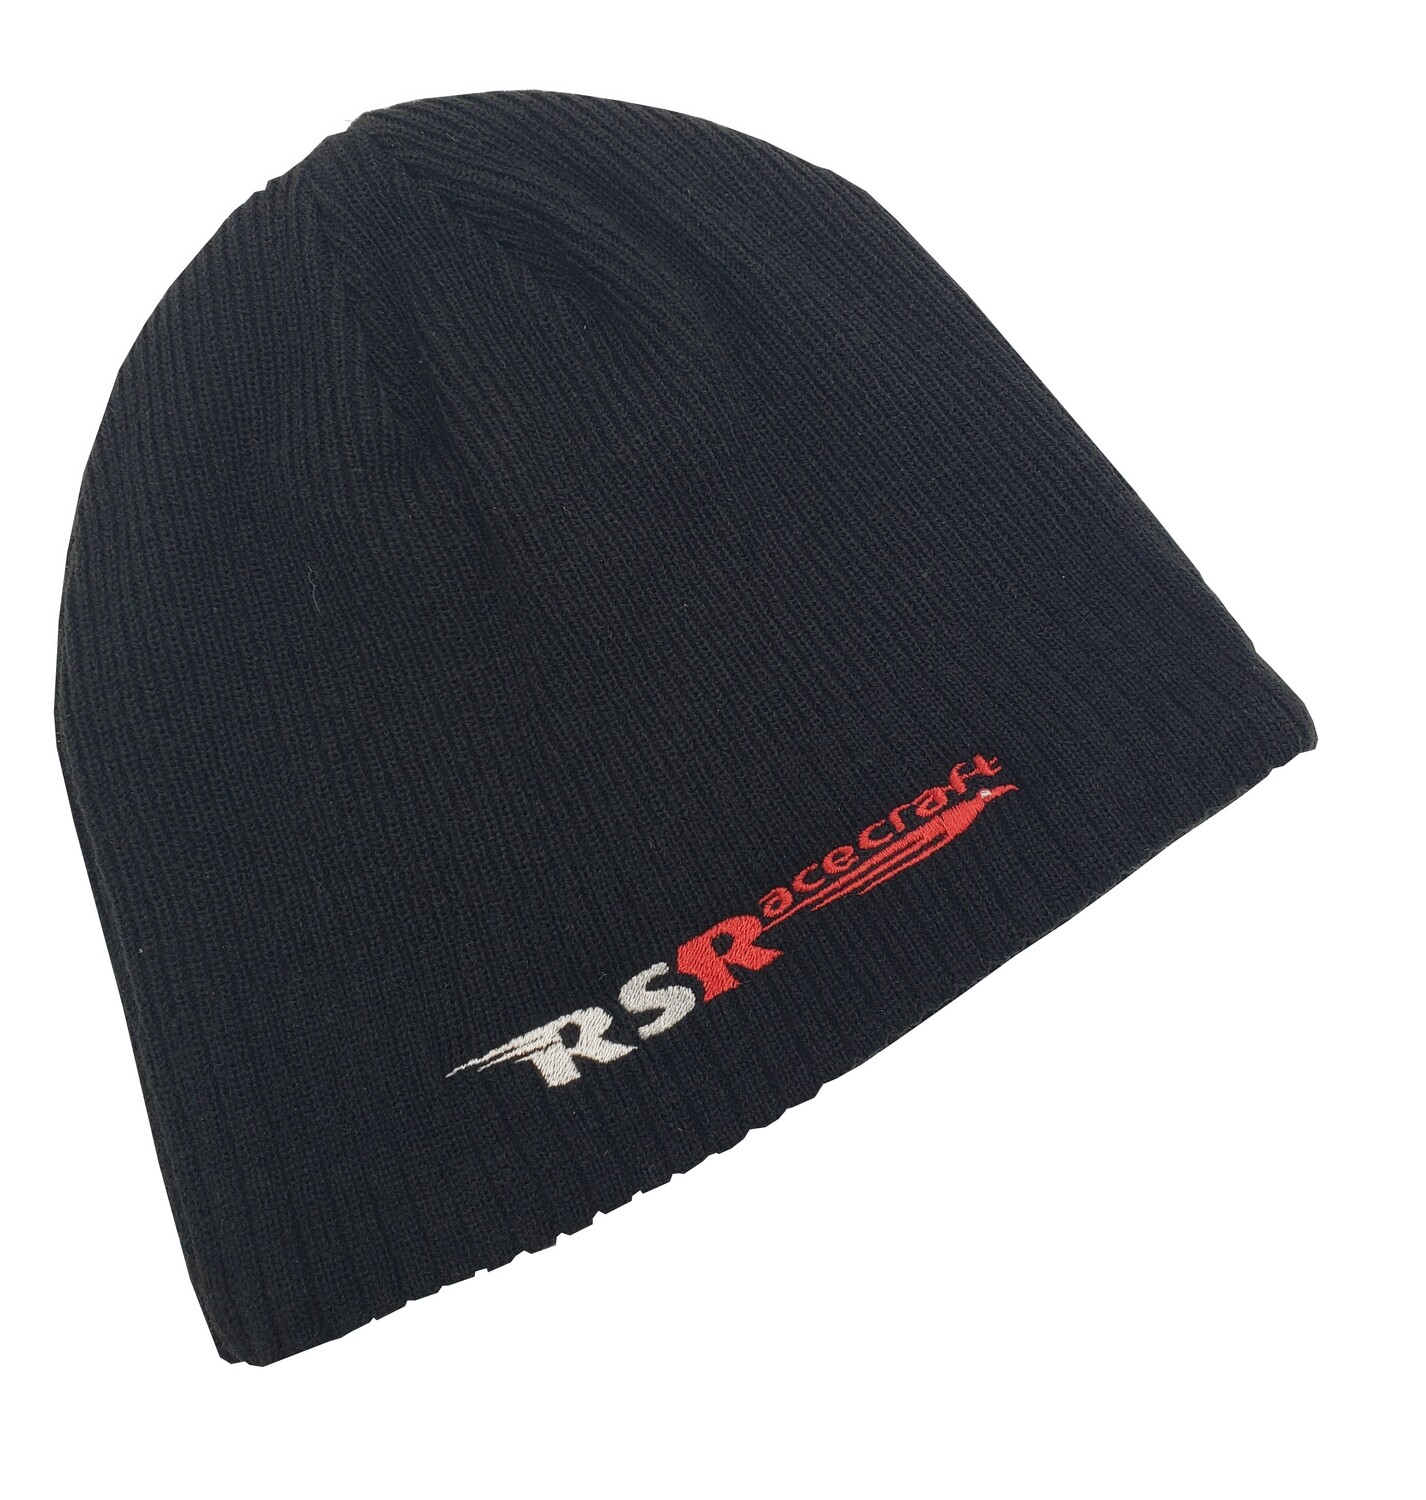 RSR FLEECE LINED BEANIE